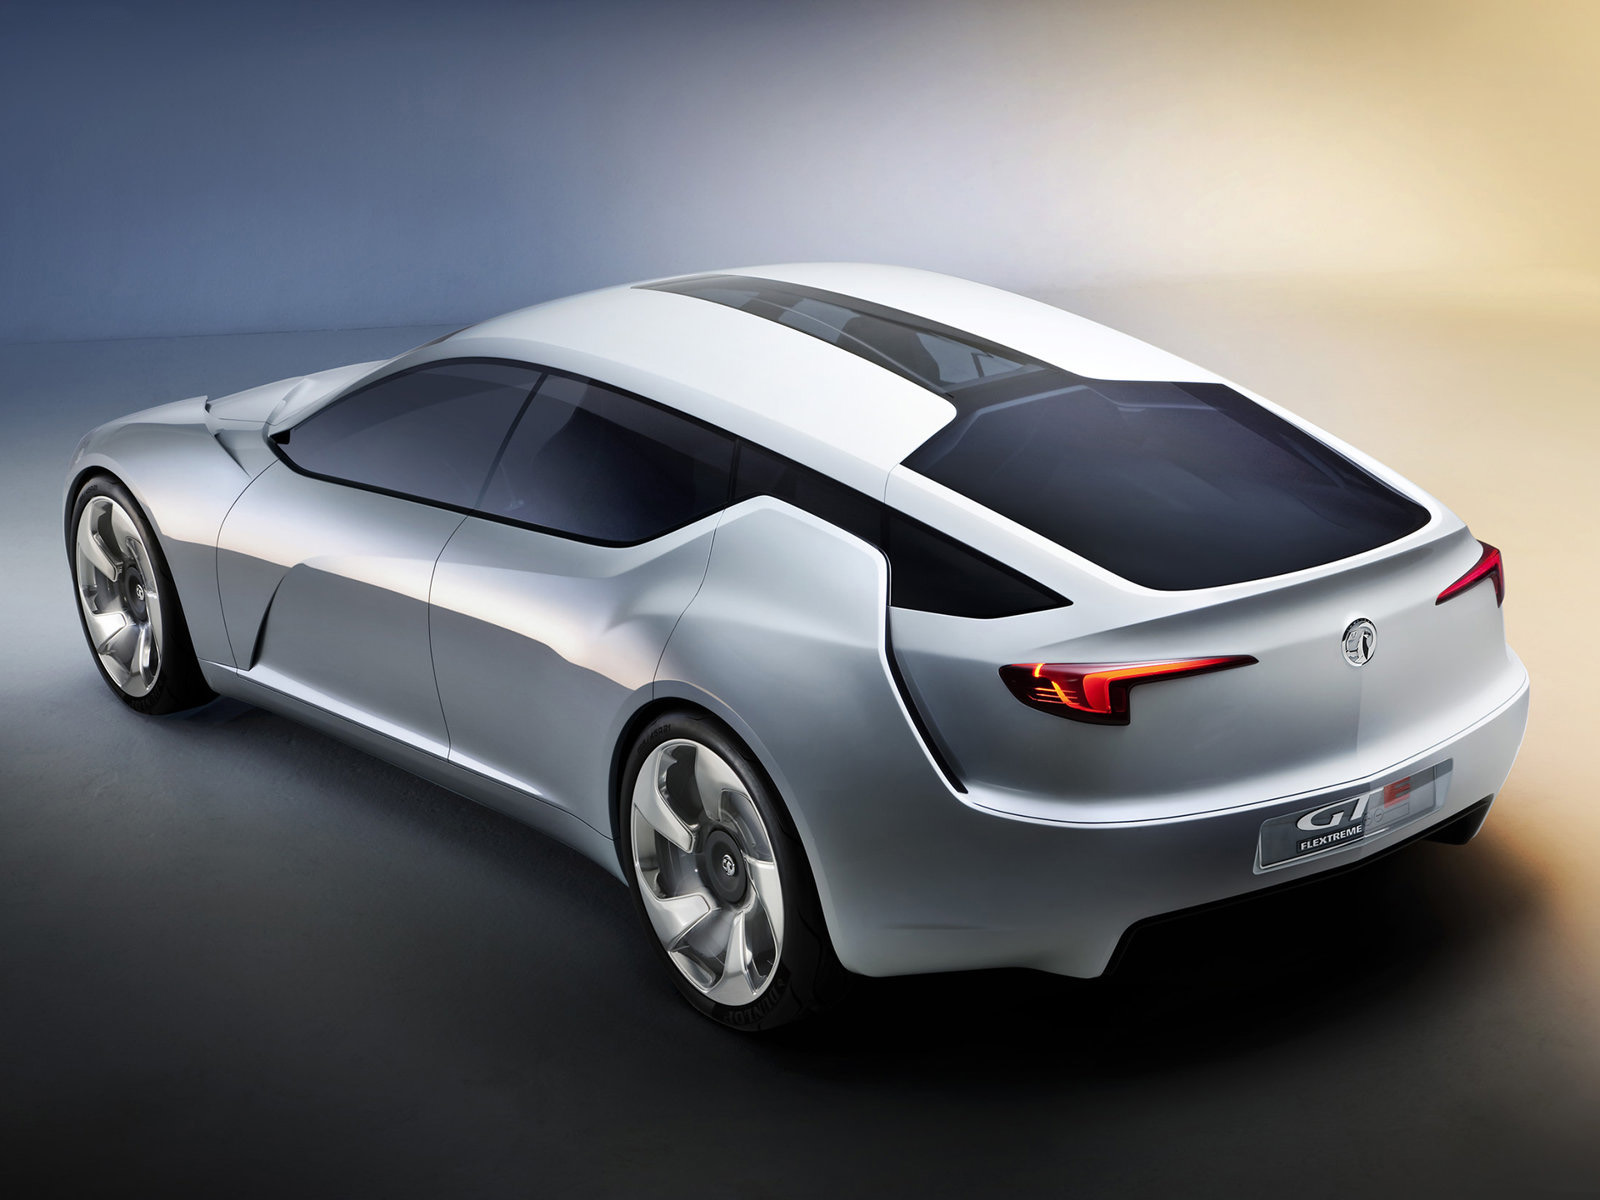 2011 Opel Flextreme GTE Concept 4 2011 Opel Concept Vehicle – A Review